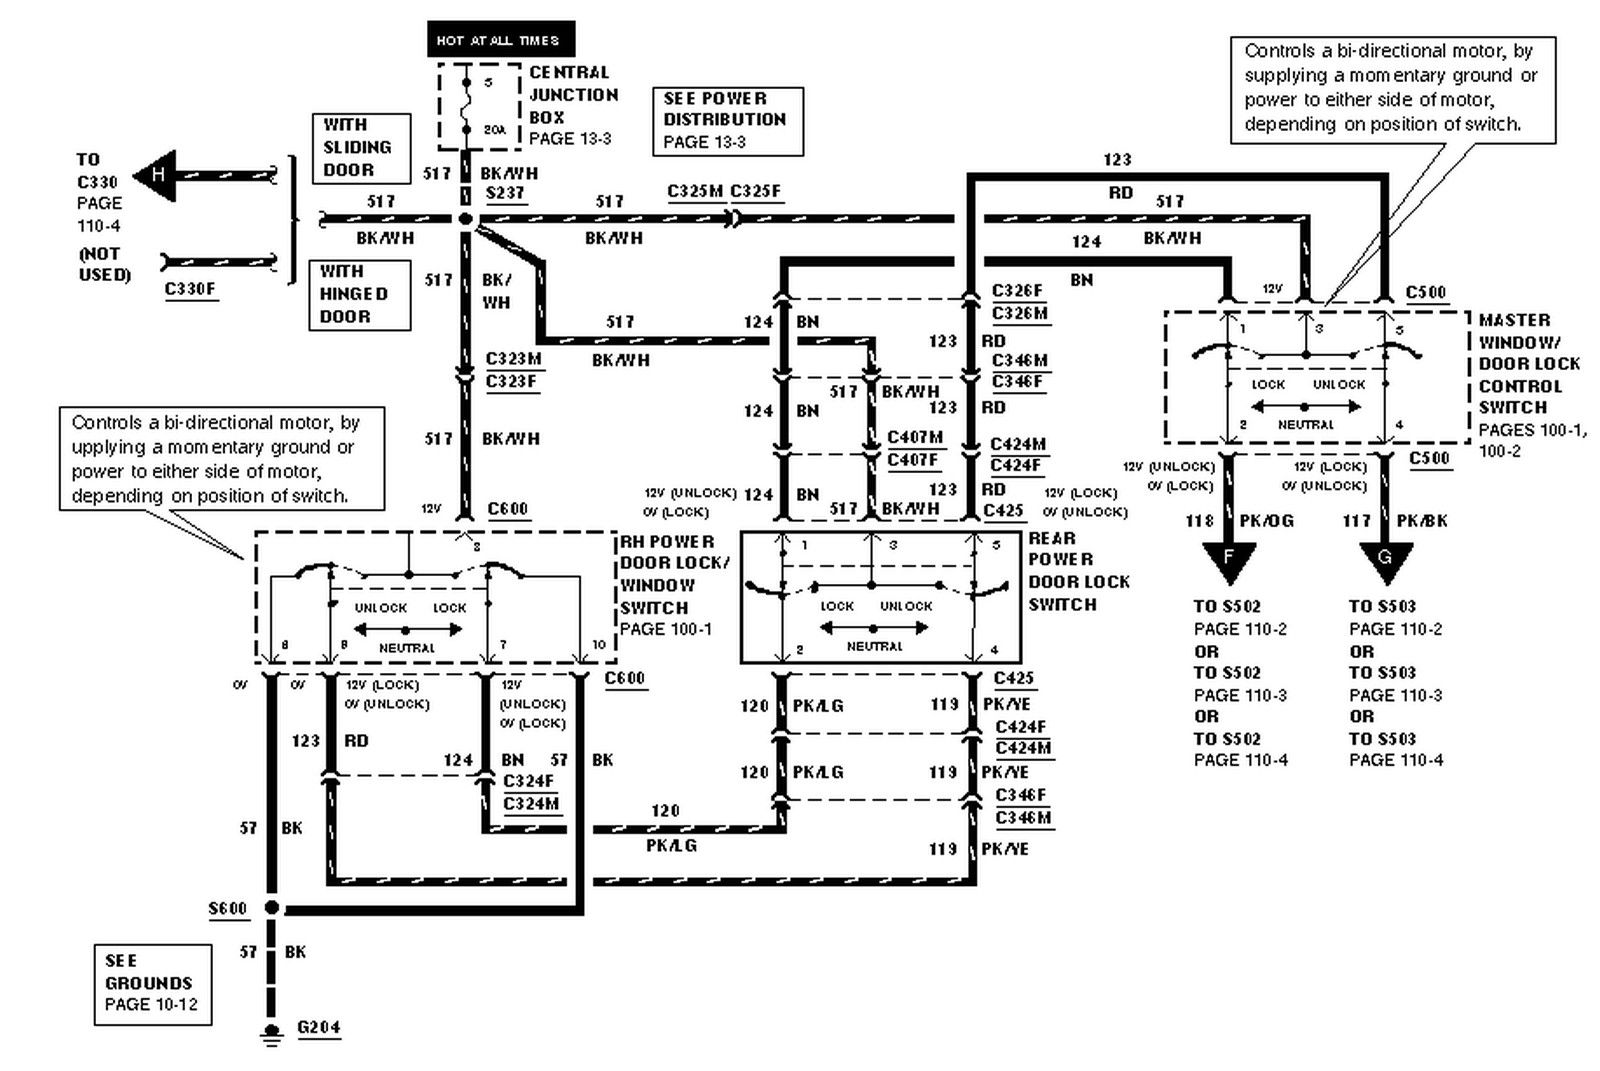 2005 ford escape xlt stereo wiring diagram emg guitar keyless entry on 1992 e350 truck enthusiasts forums